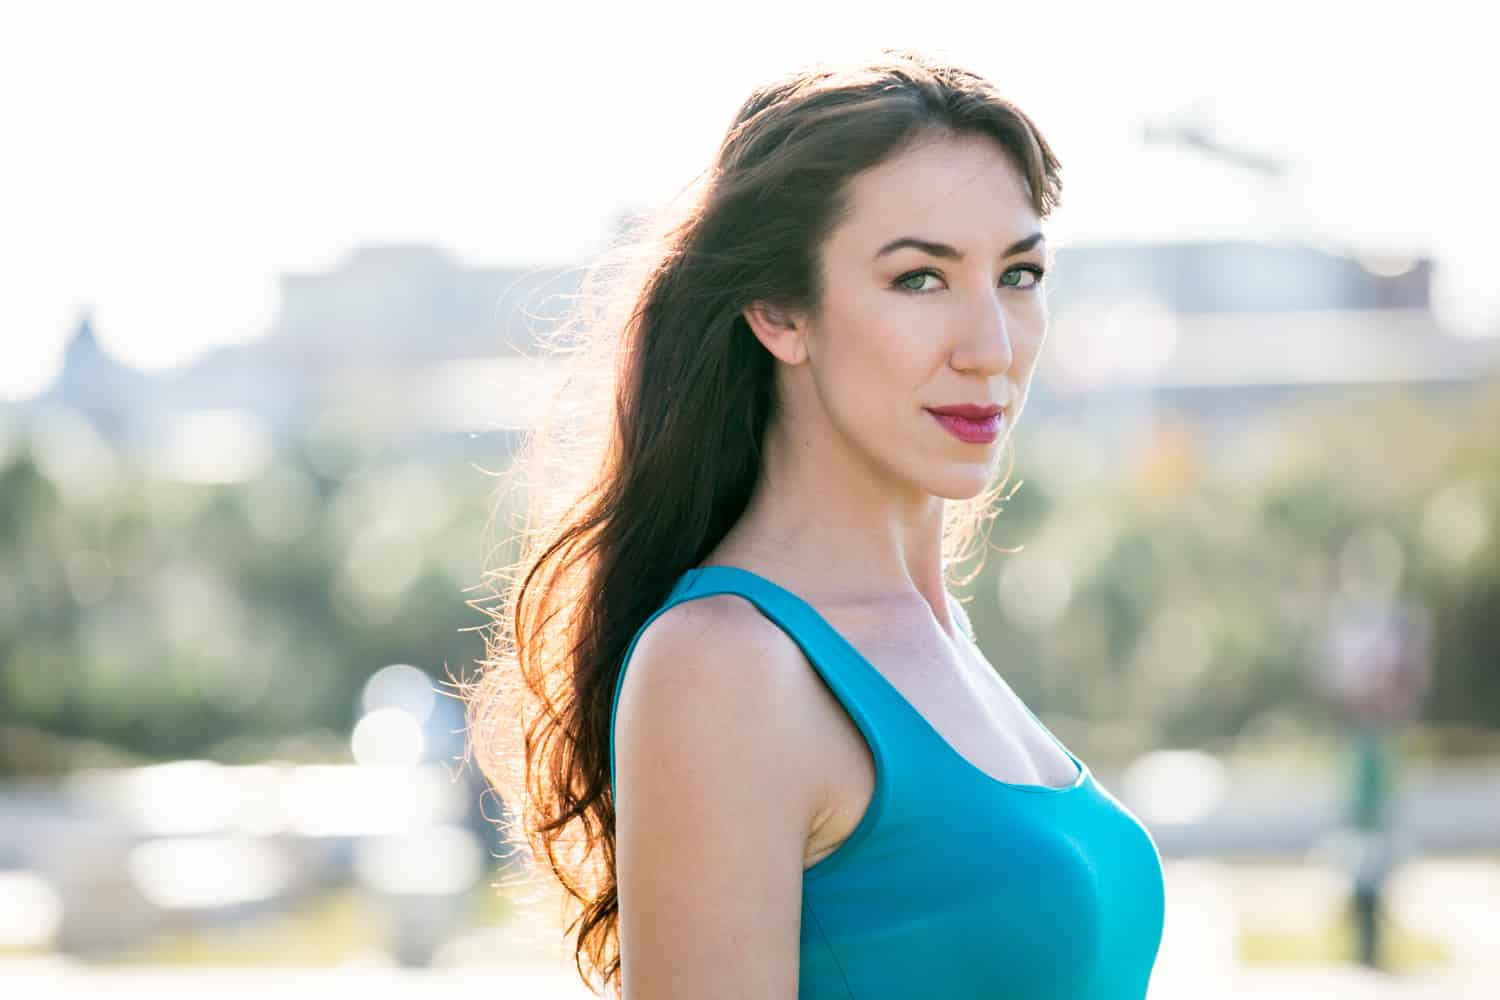 Acting headshots of model with long dark hair and blue tank top